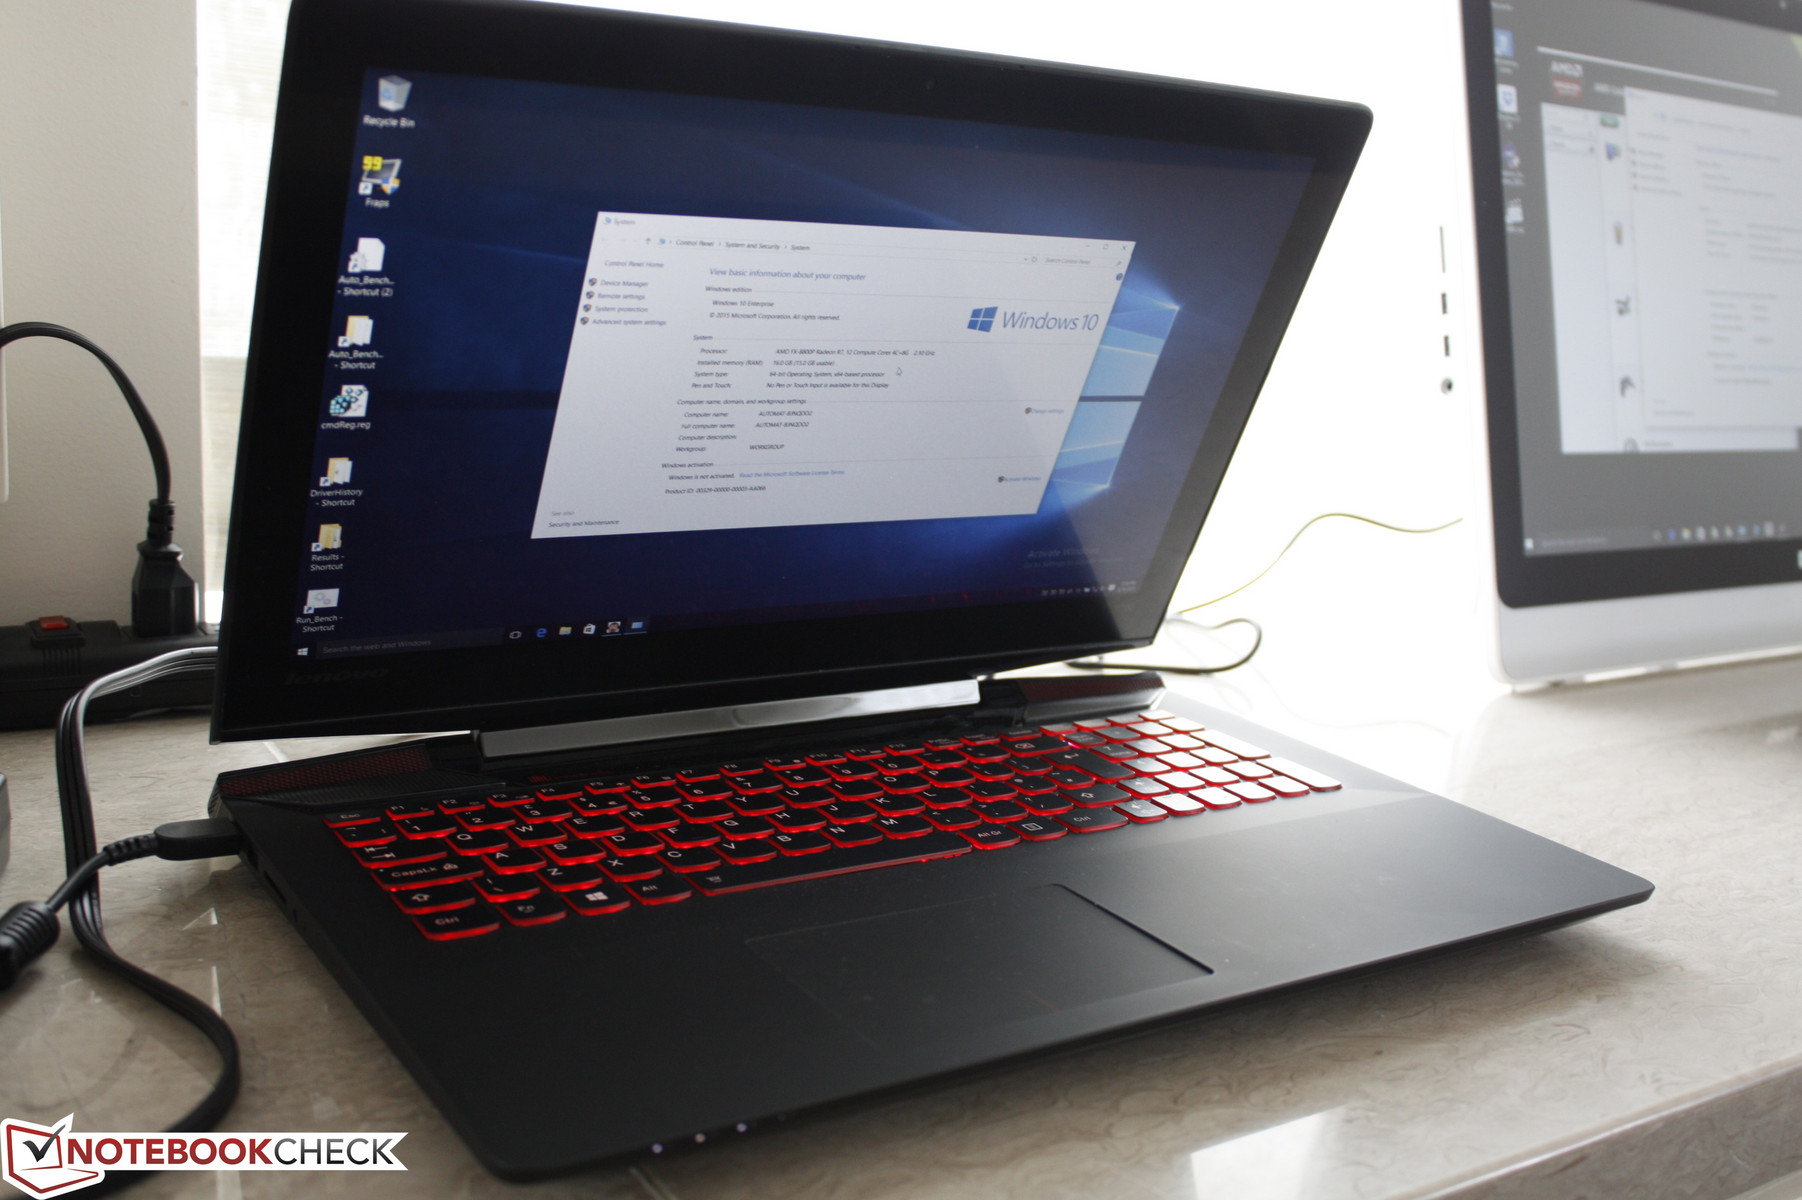 AMD shows off Lenovo Y700 with FX-8800P APU - NotebookCheck net News